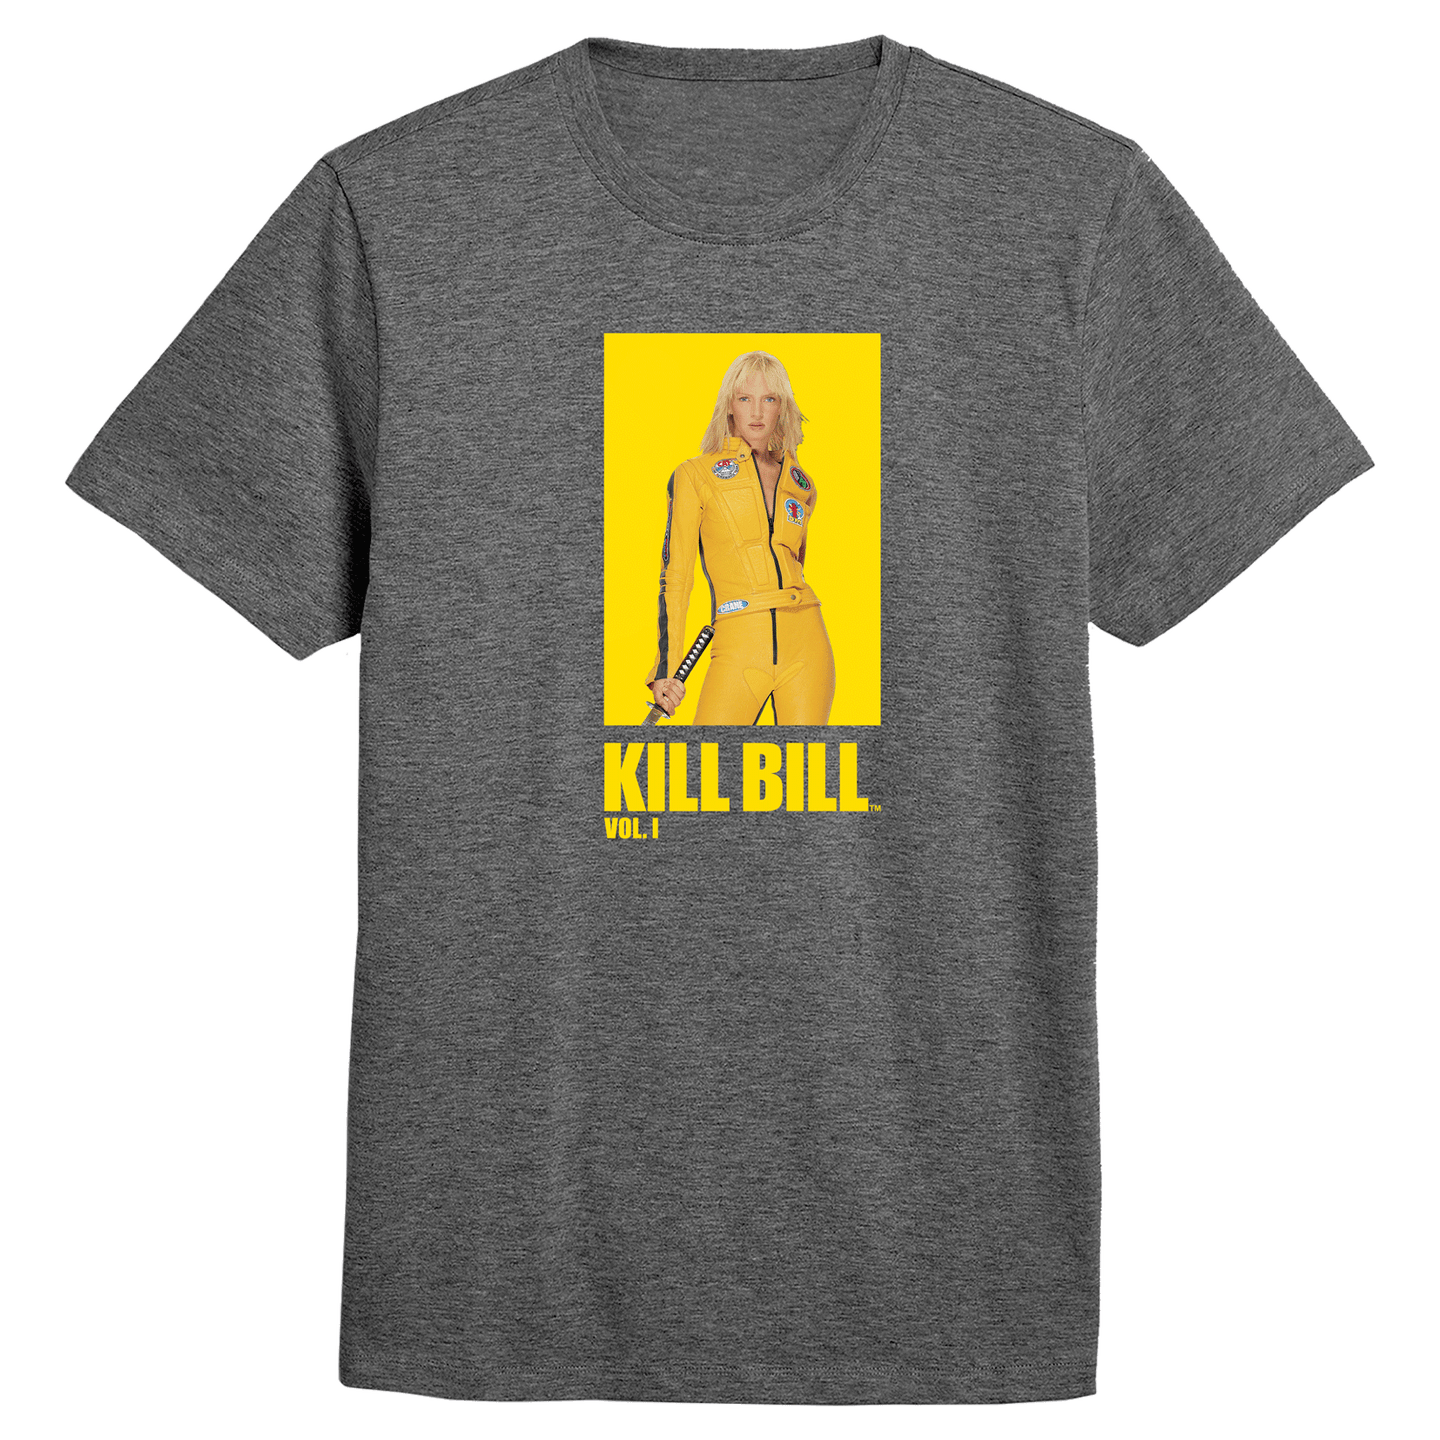 Kill Bill Dark Heather Tee